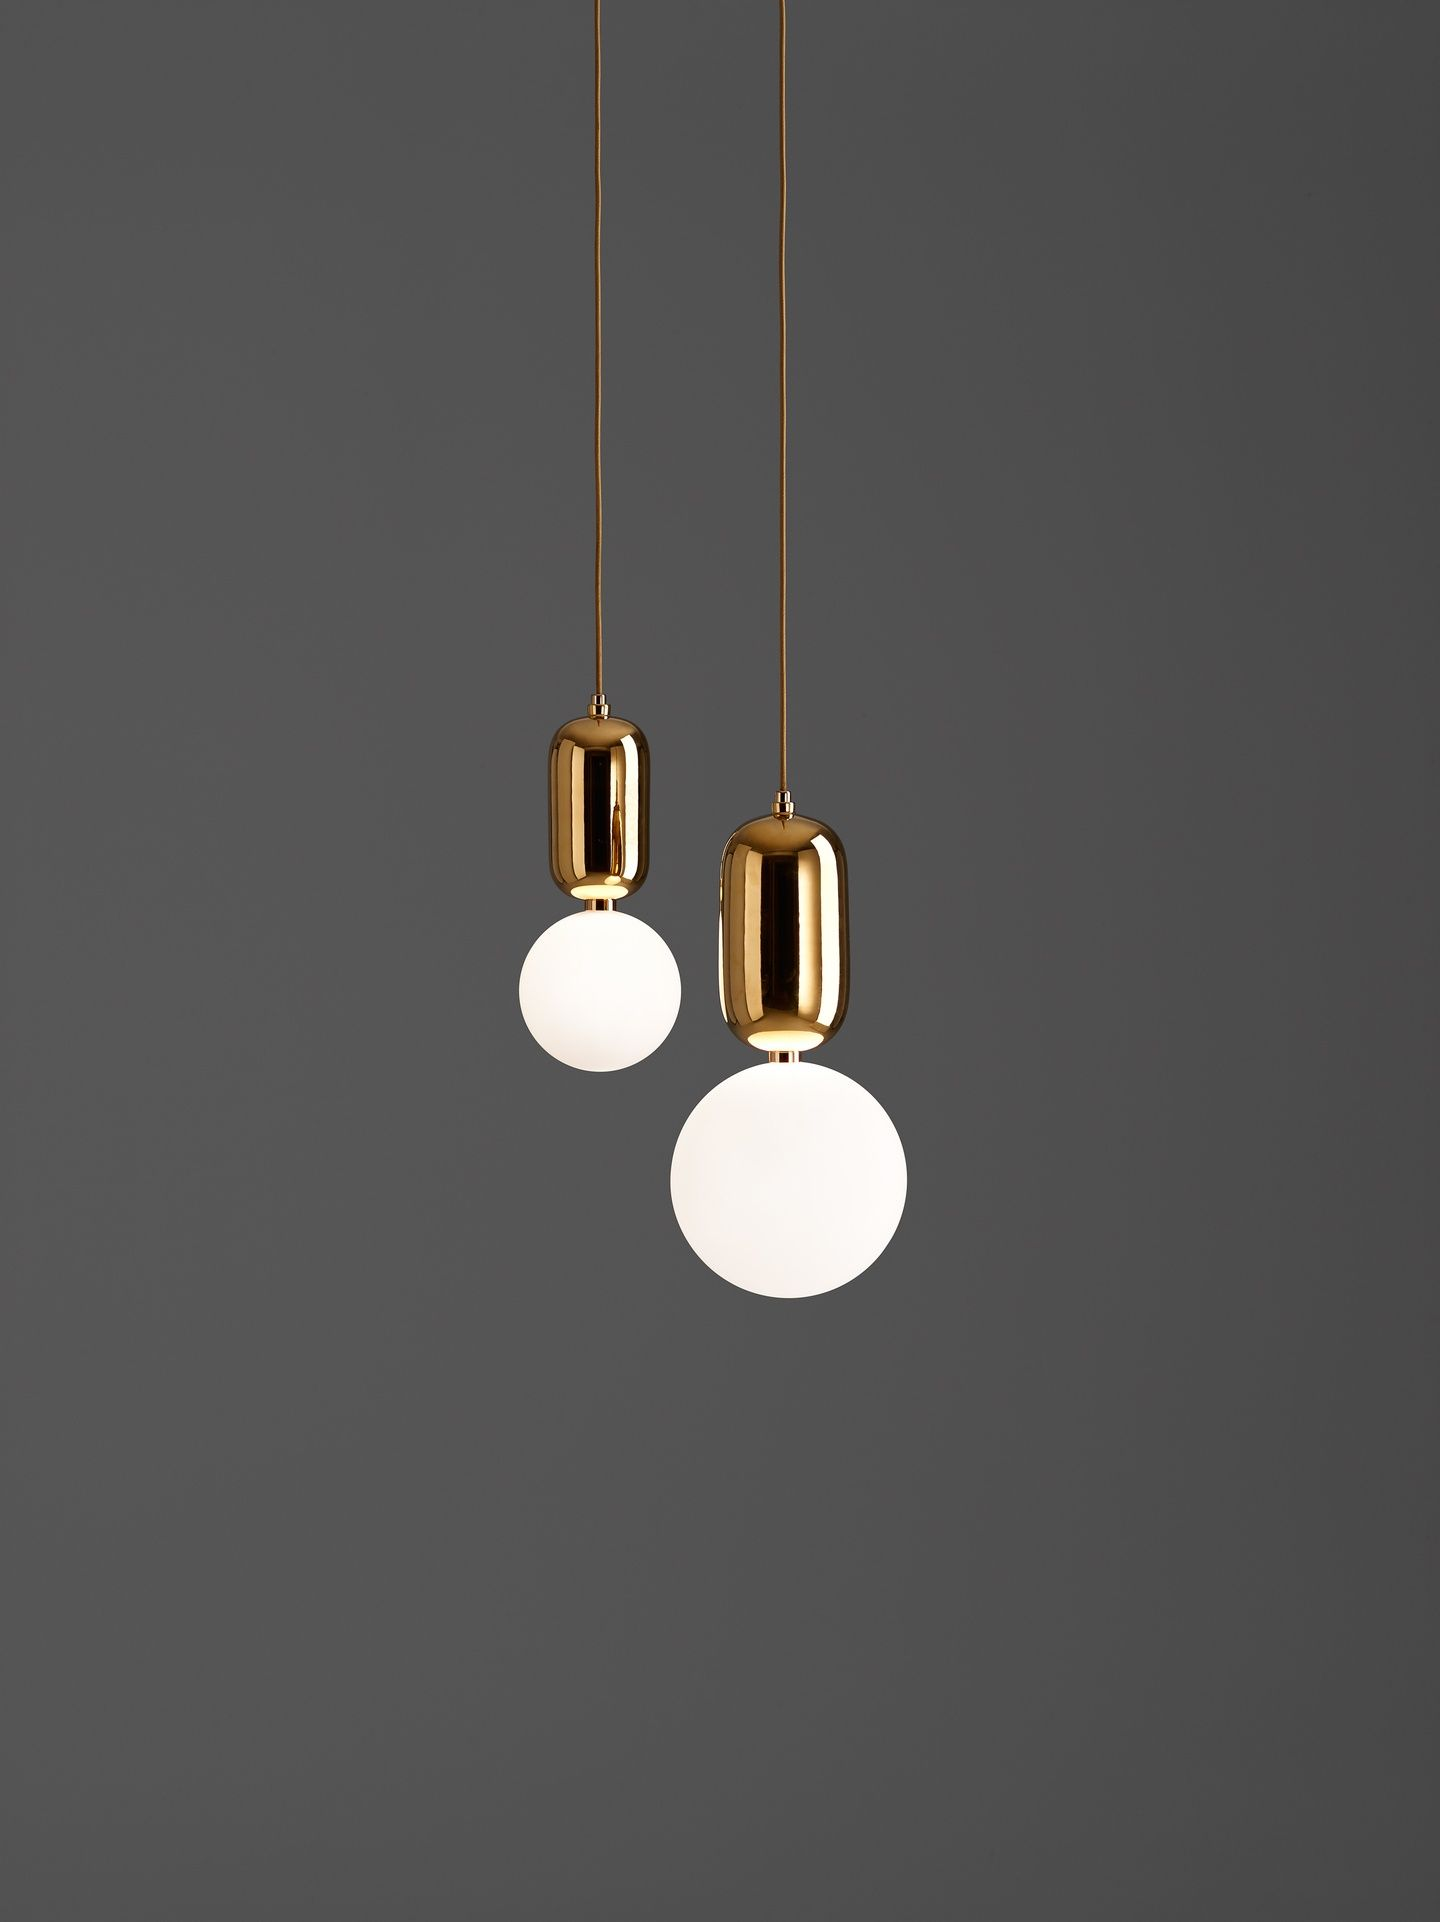 A Pendant By Parachilna Ecc Lighting Furniture